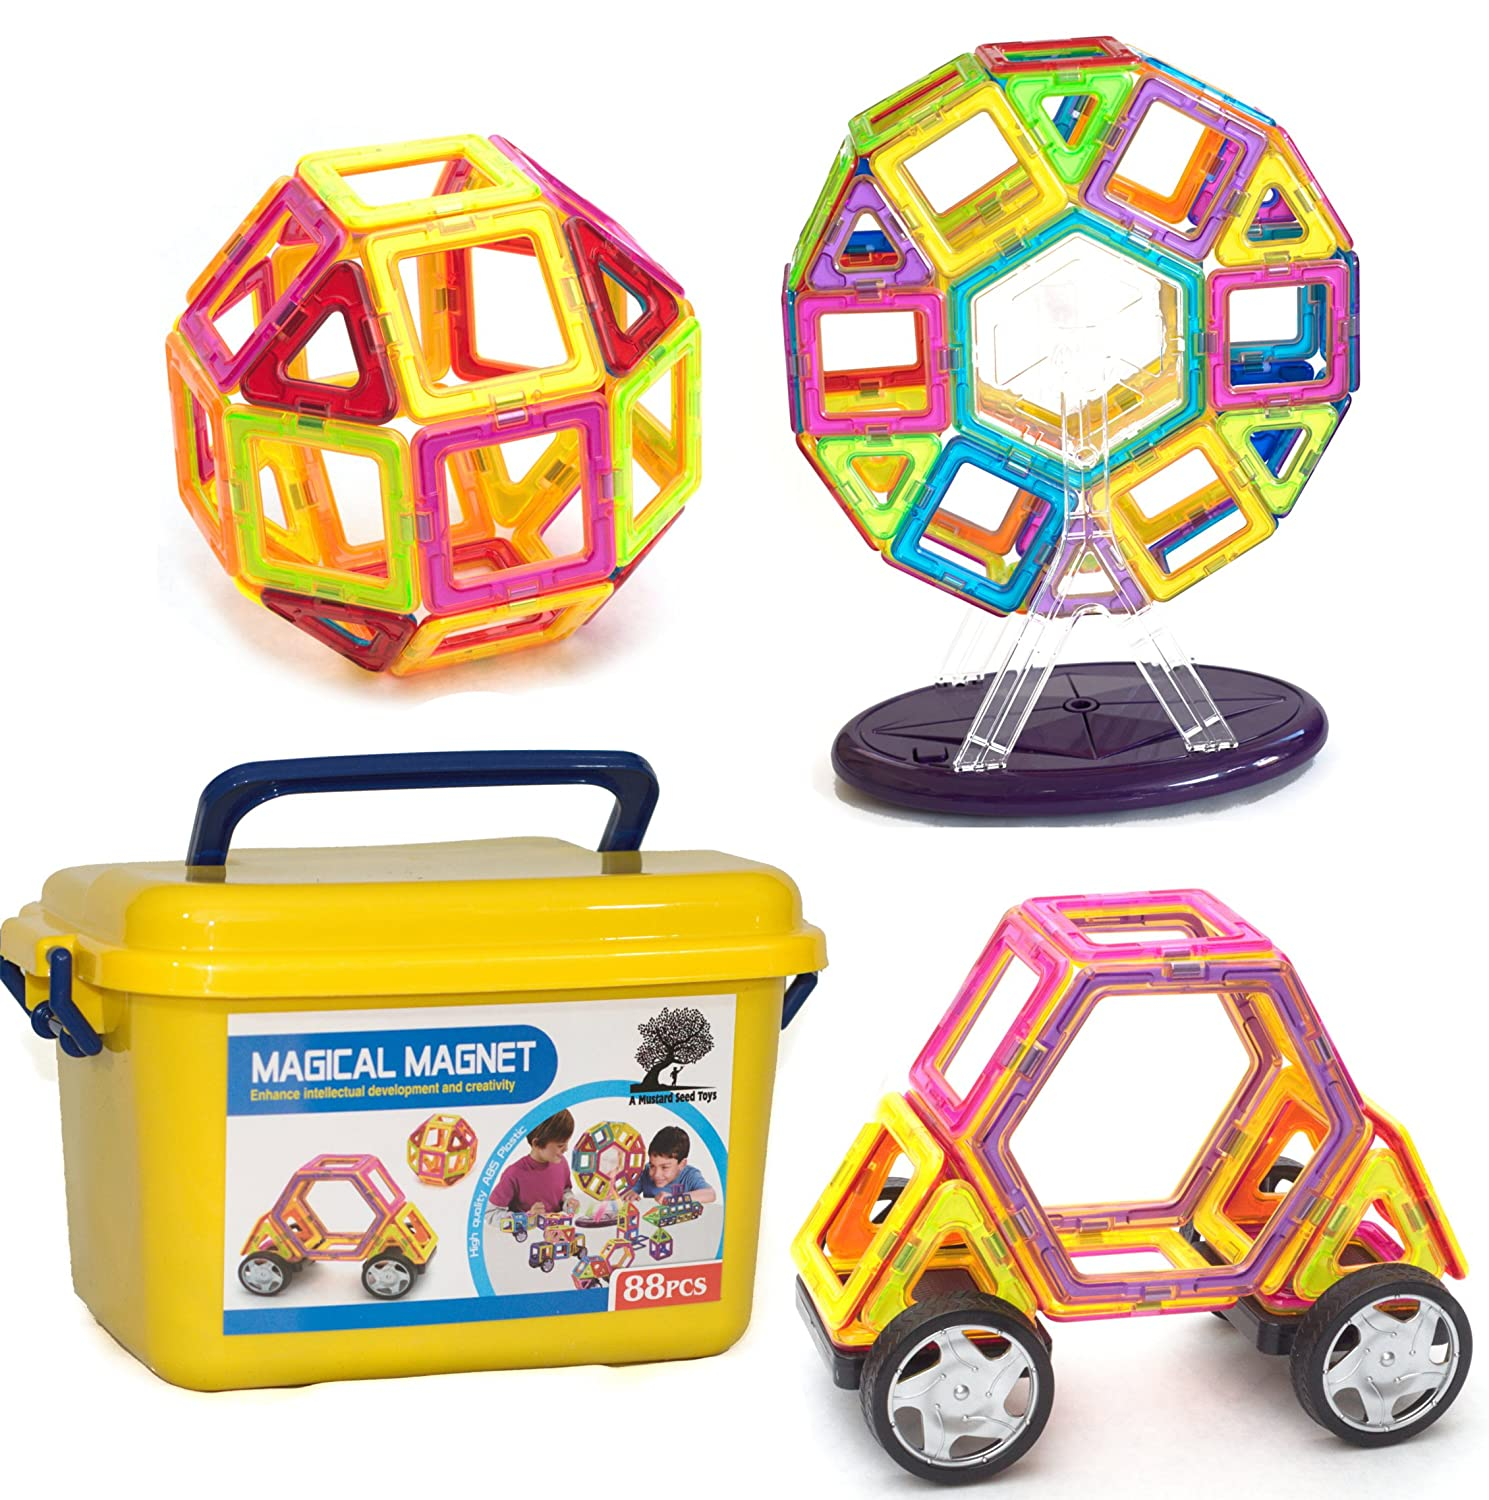 A Mustard Seed Toys Magnetic Tiles - 88 Large Pieces, Full Size, Kids Learn Colors, Shapes, and Patterns, Great Starter Set, Includes Wheels for Building Cars and a Ferris Wheel With Lights and Music Review